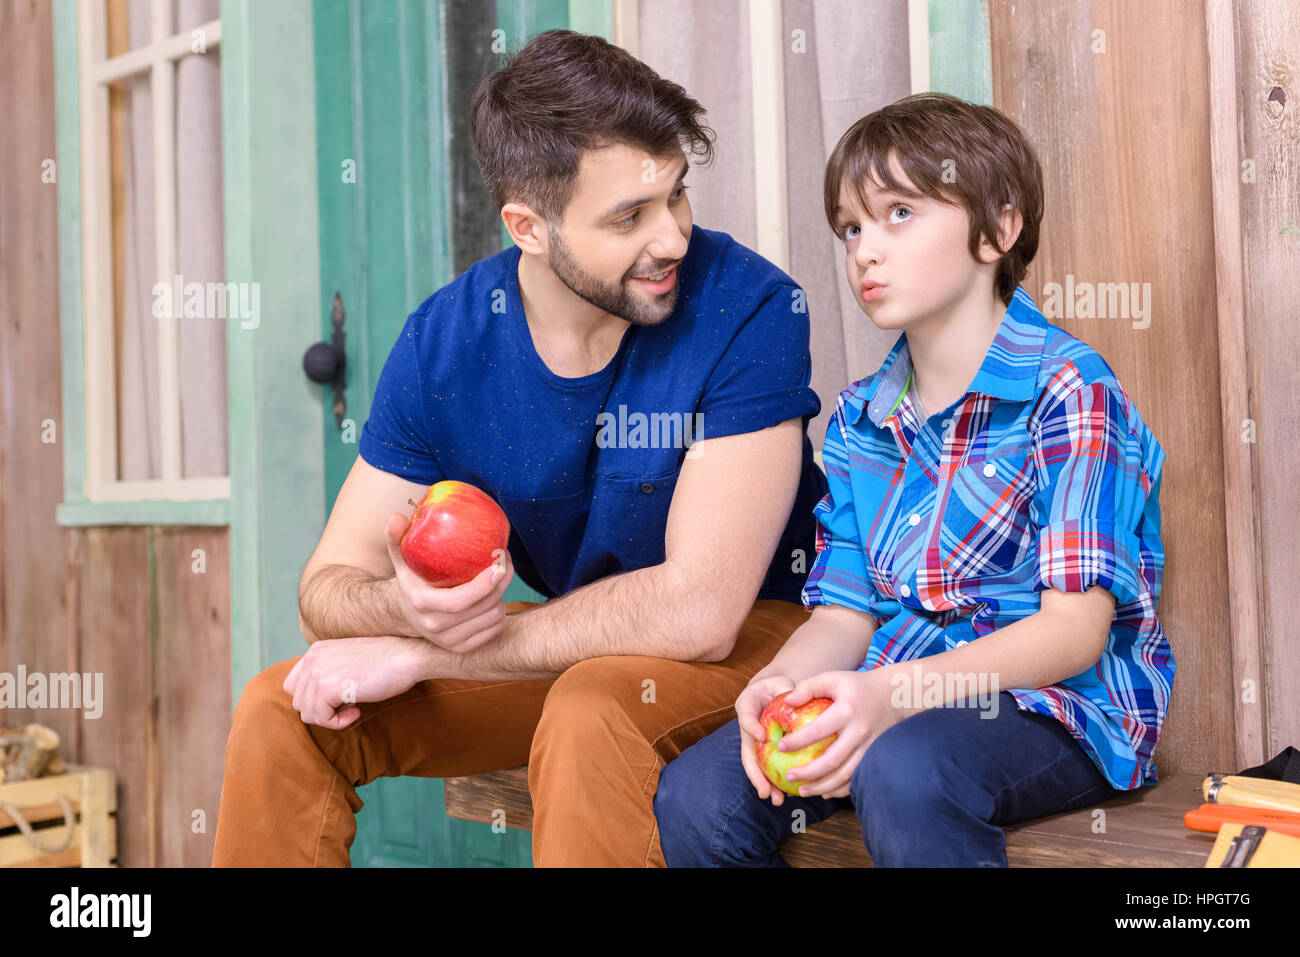 father and cute pensive son sitting on wooden bench and eating apples - Stock Image